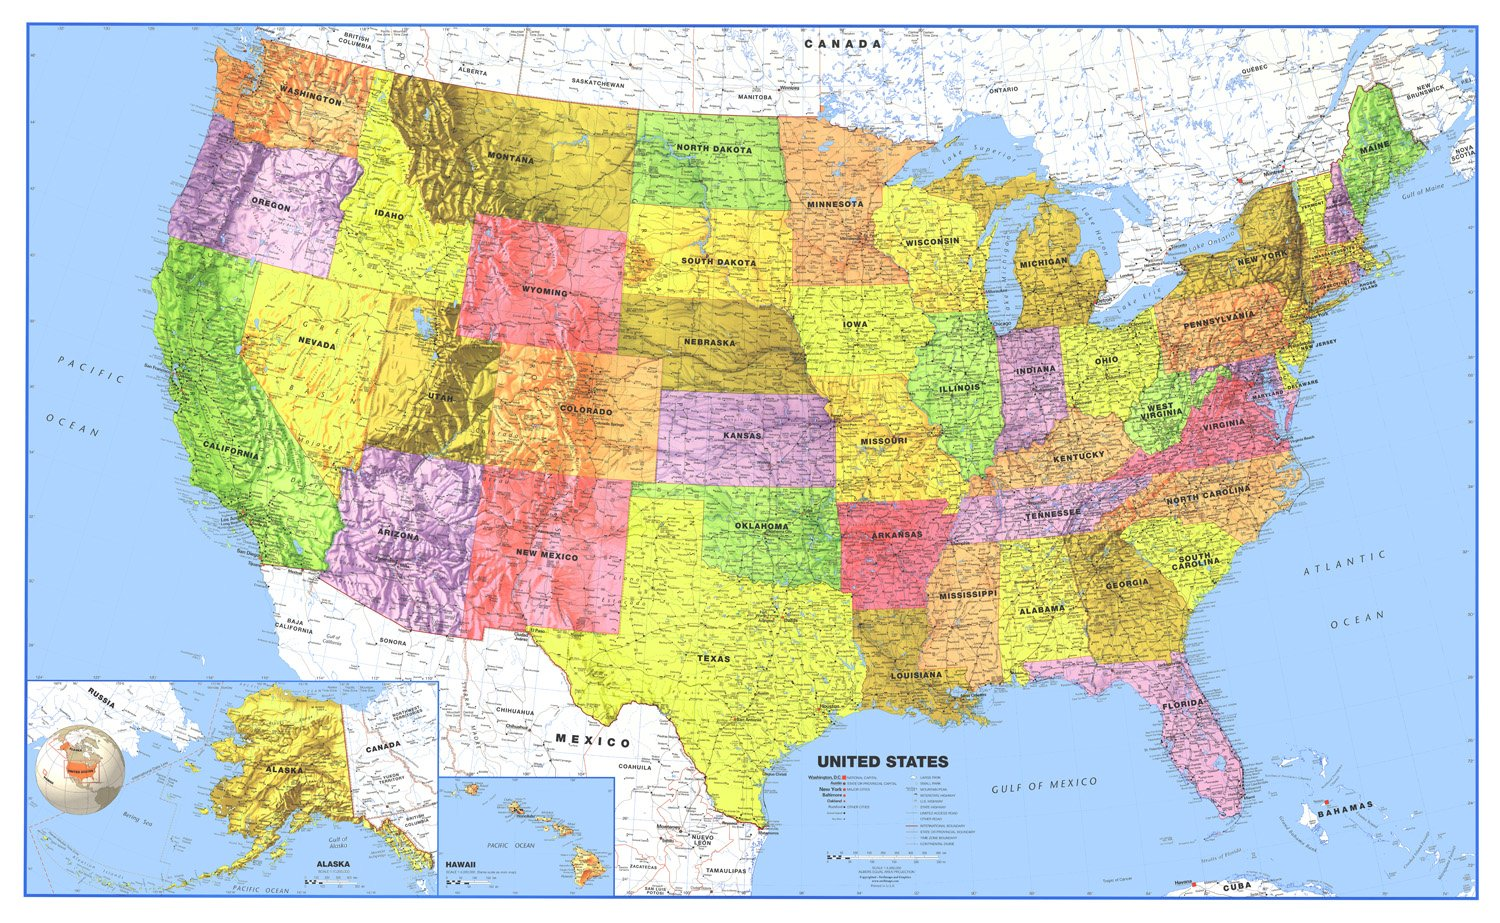 36x60 United States Classic Premier Blue Oceans 3D Wall Map Poster (36x60 Laminated) by Swiftmaps